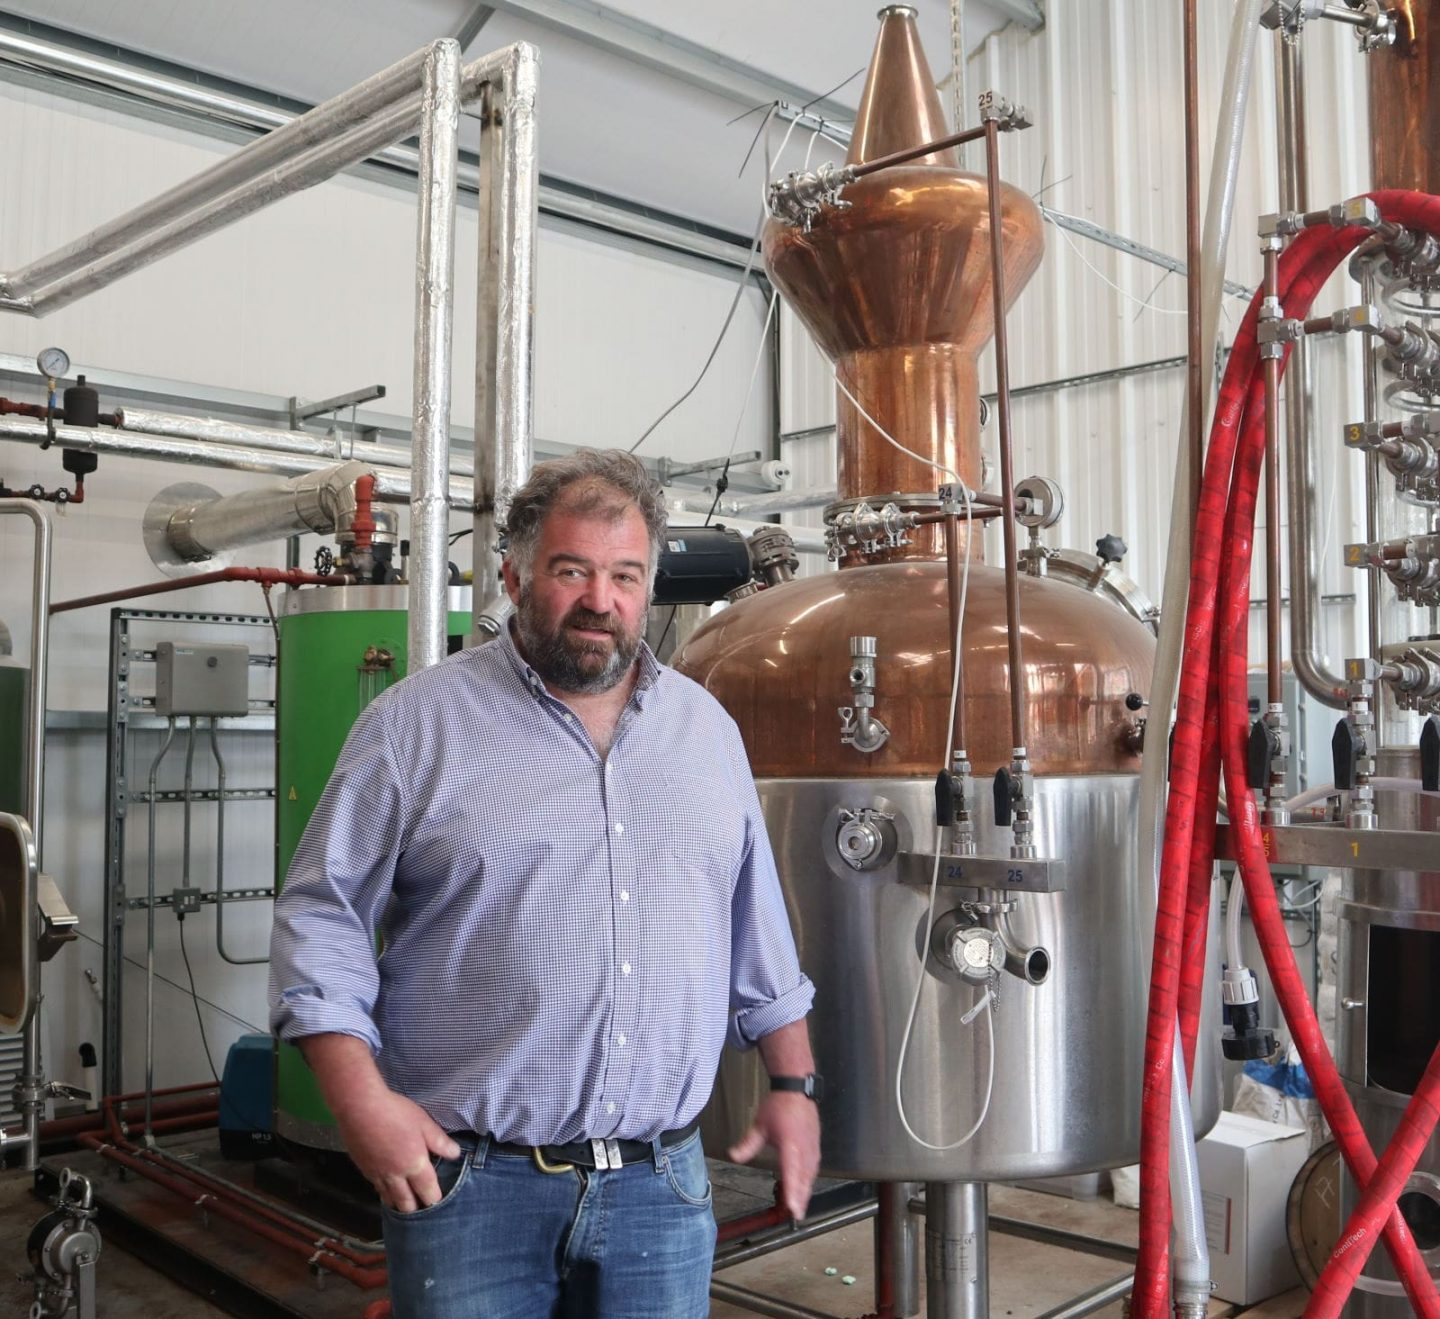 Tour guide for the gin distillery tour - master distiller Toby Whittaker